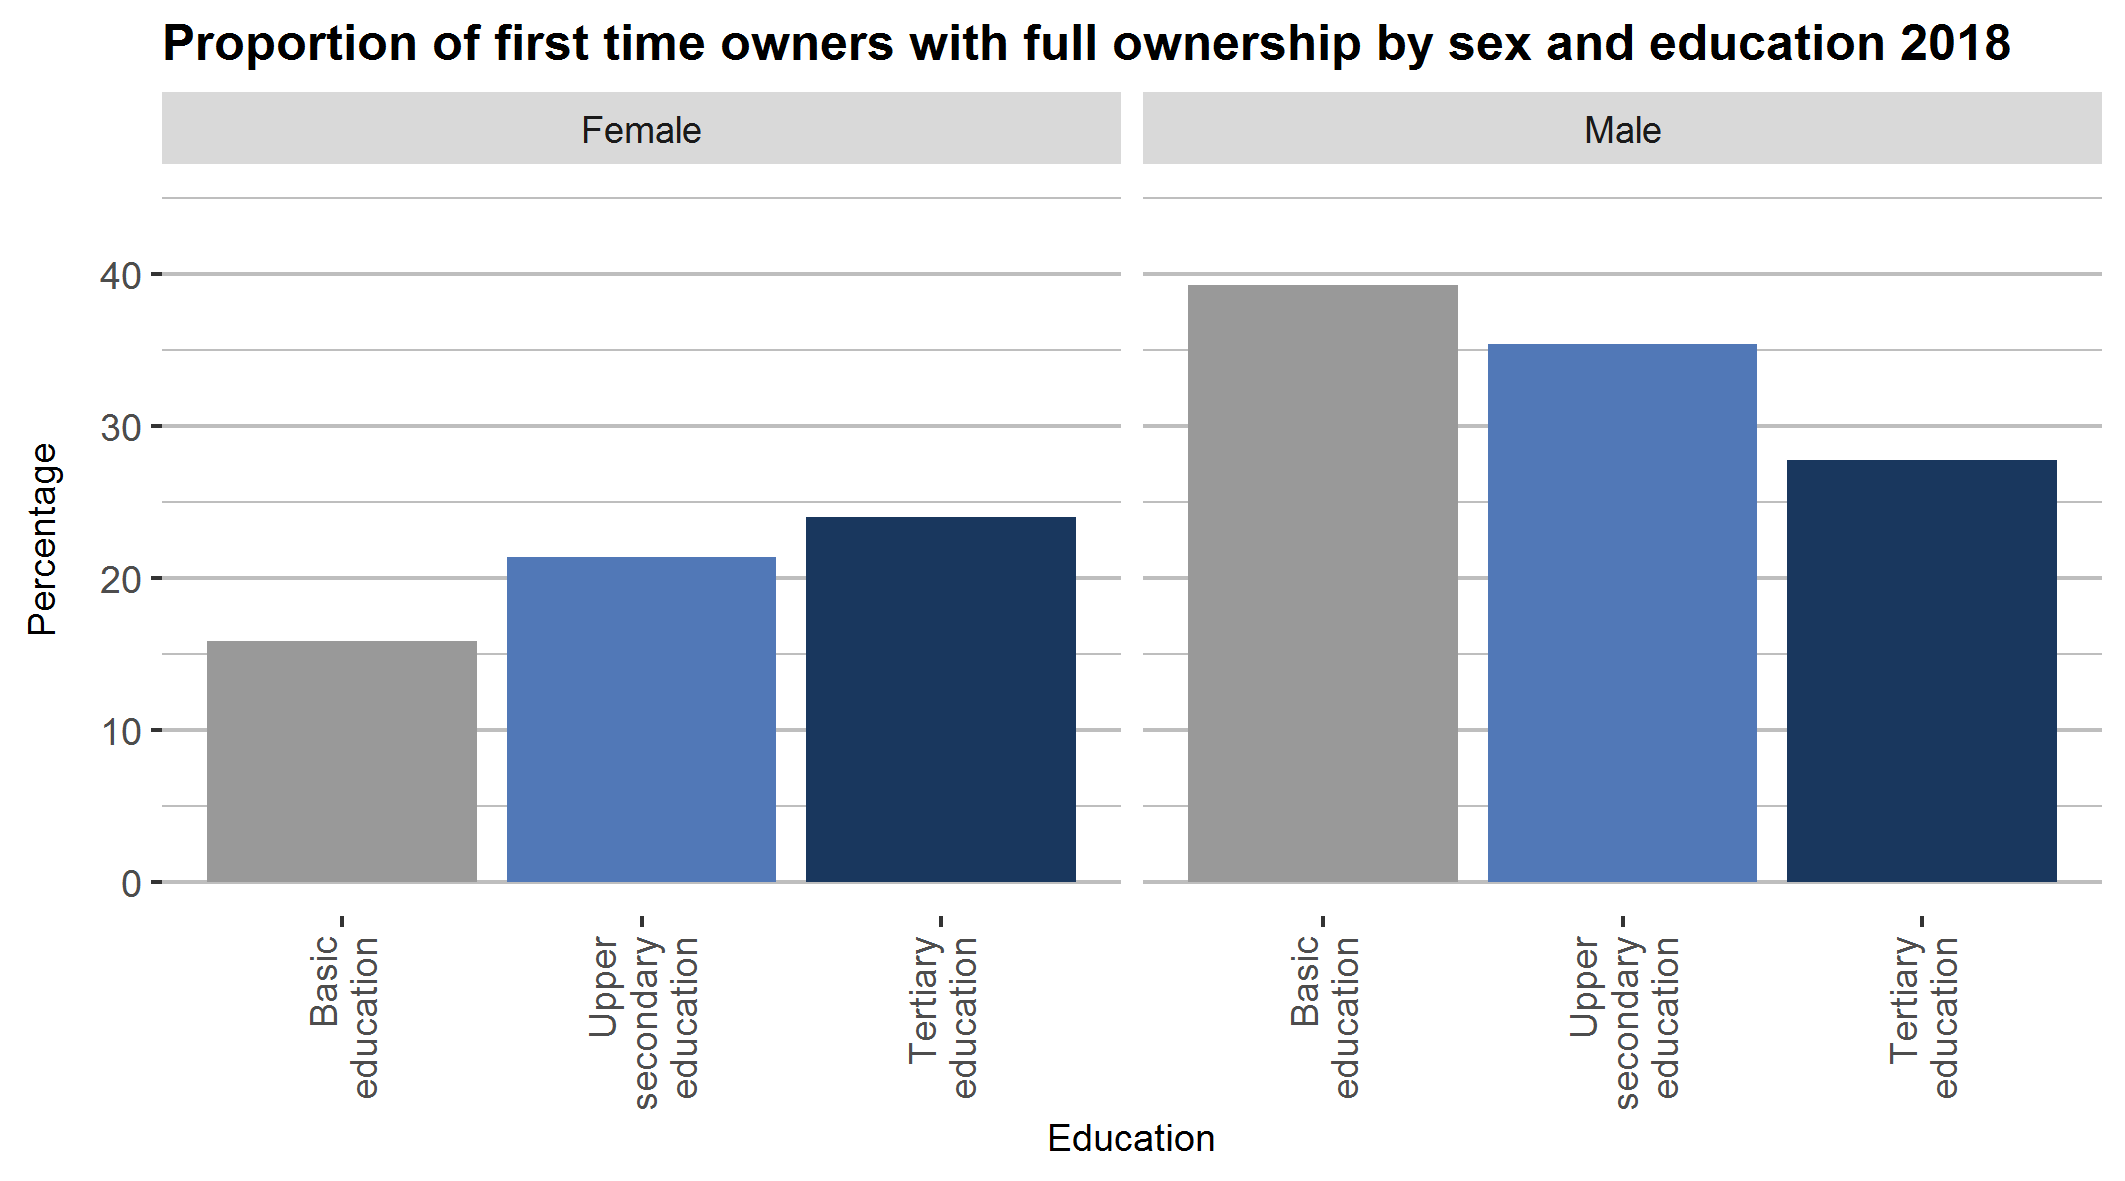 First time owners by education